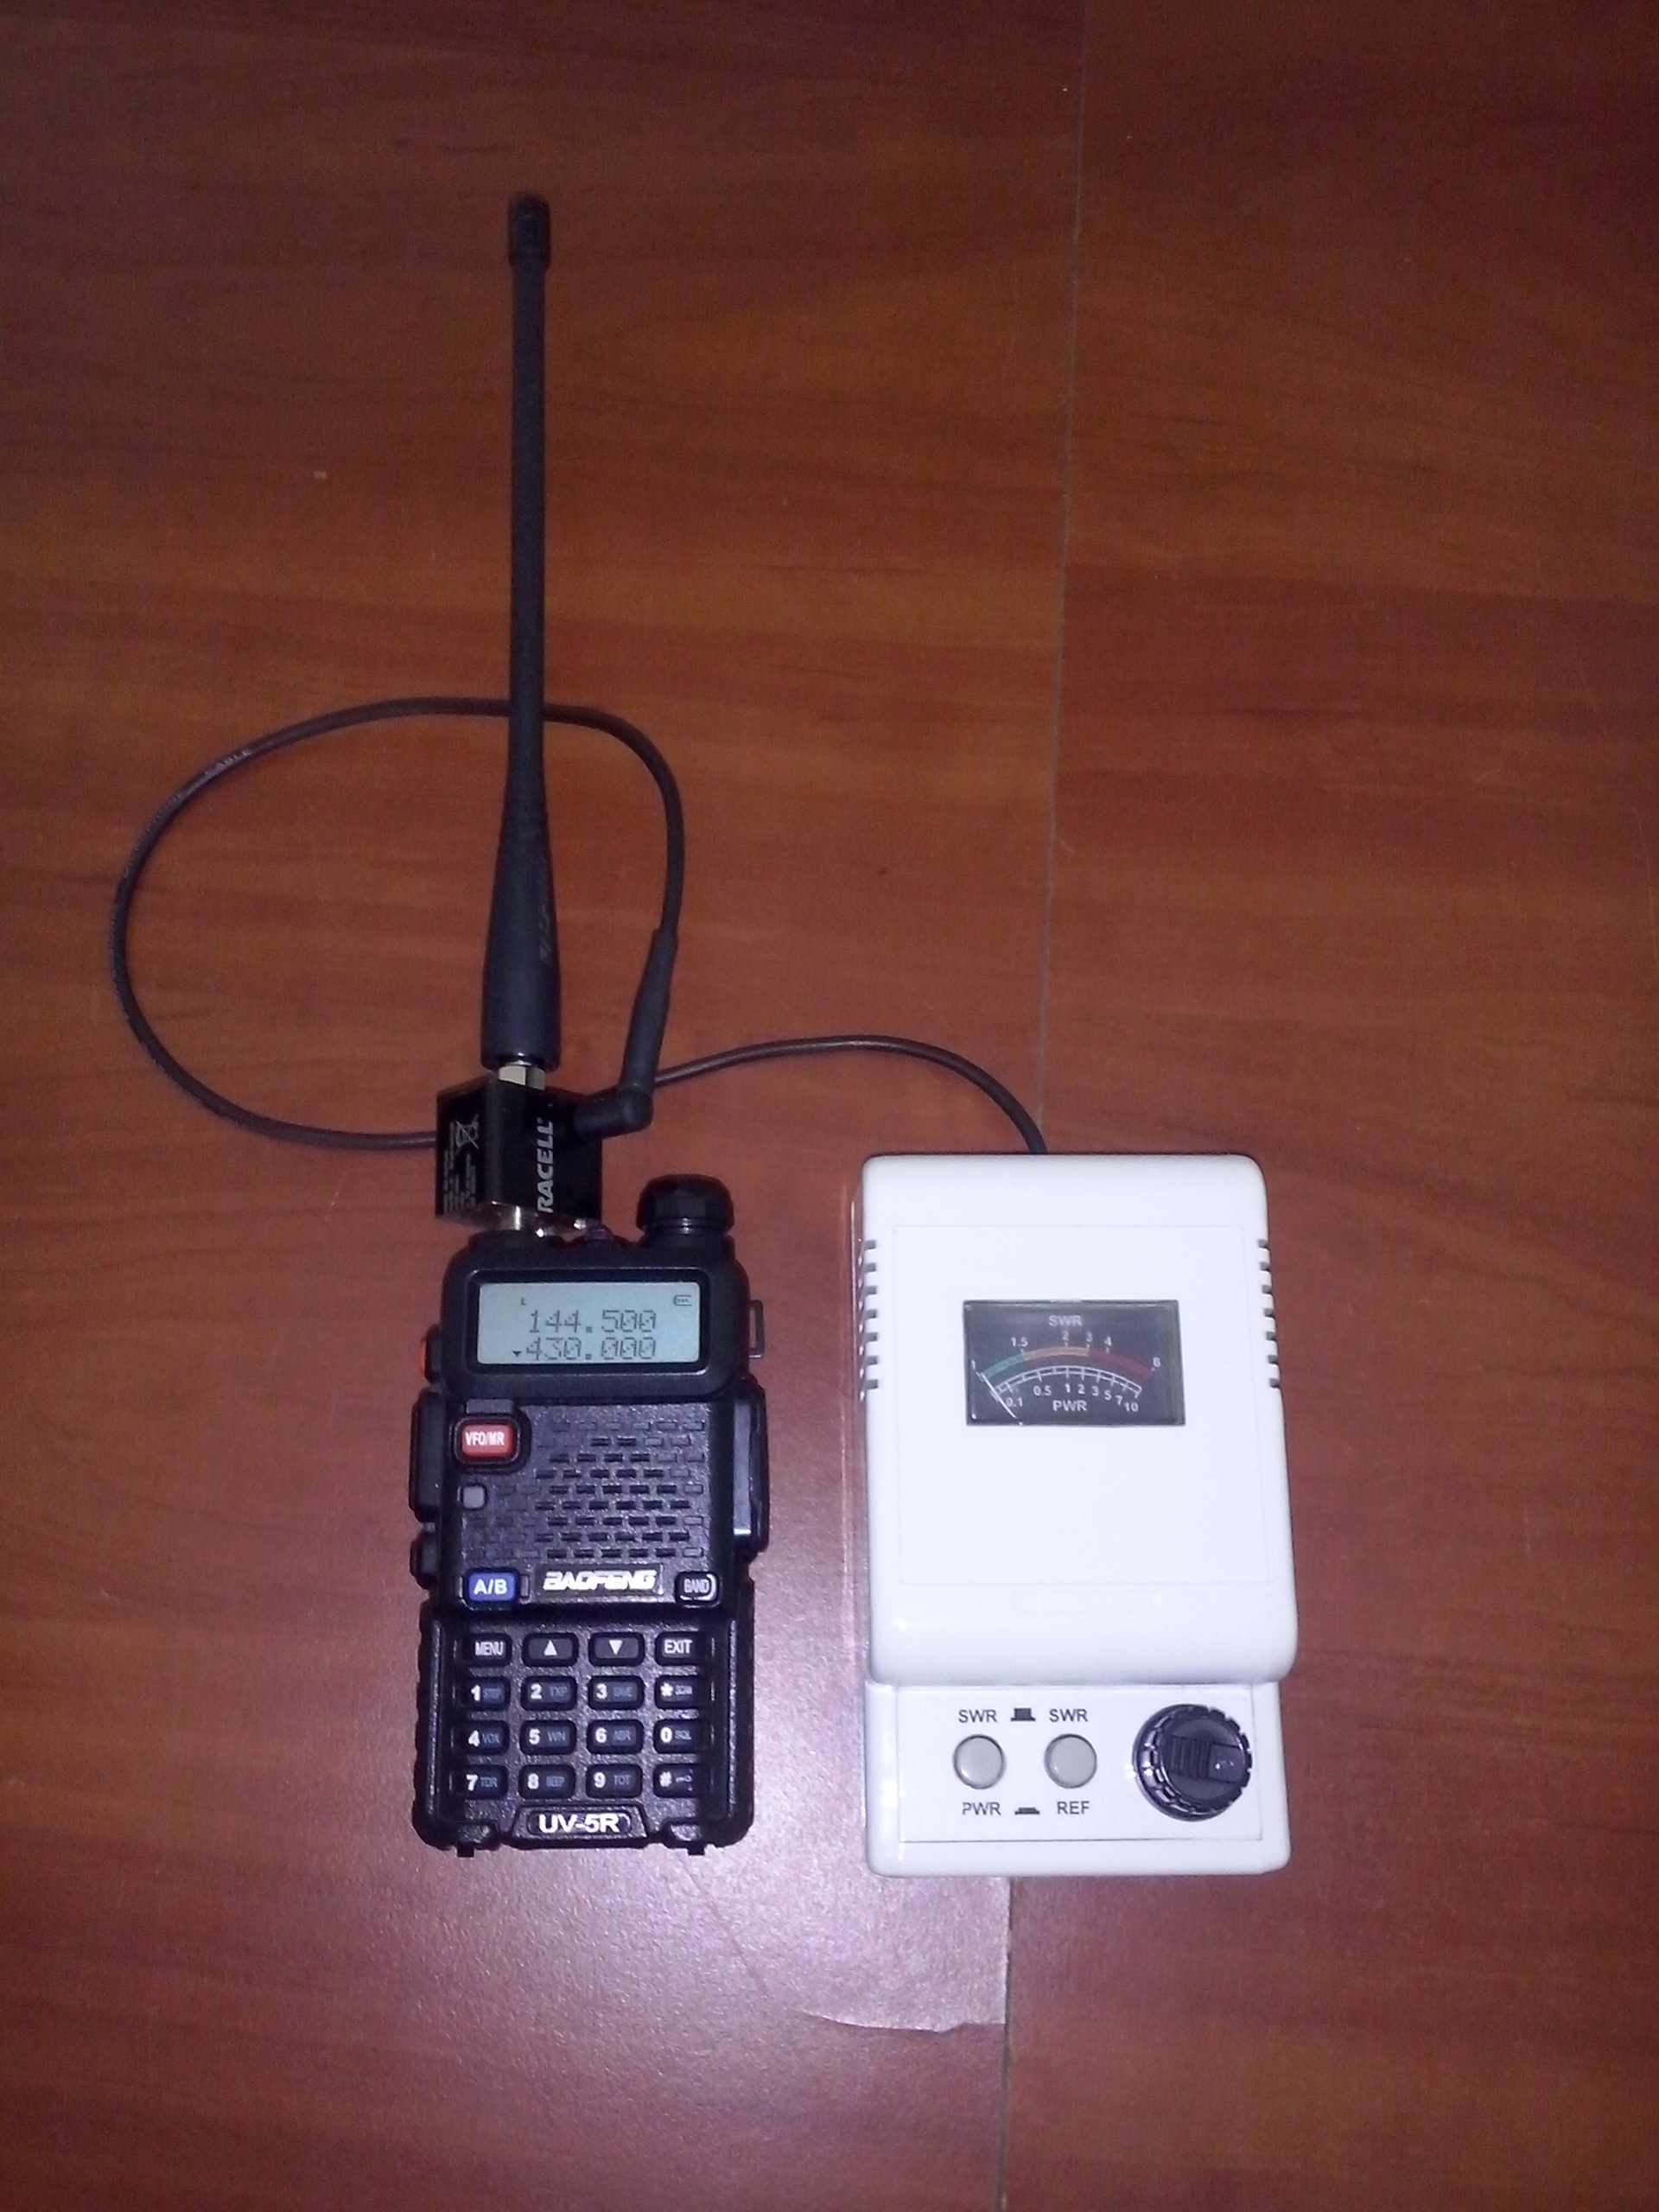 Swr Test Of Antennas For Baofeng Uv5r Diy Goodies